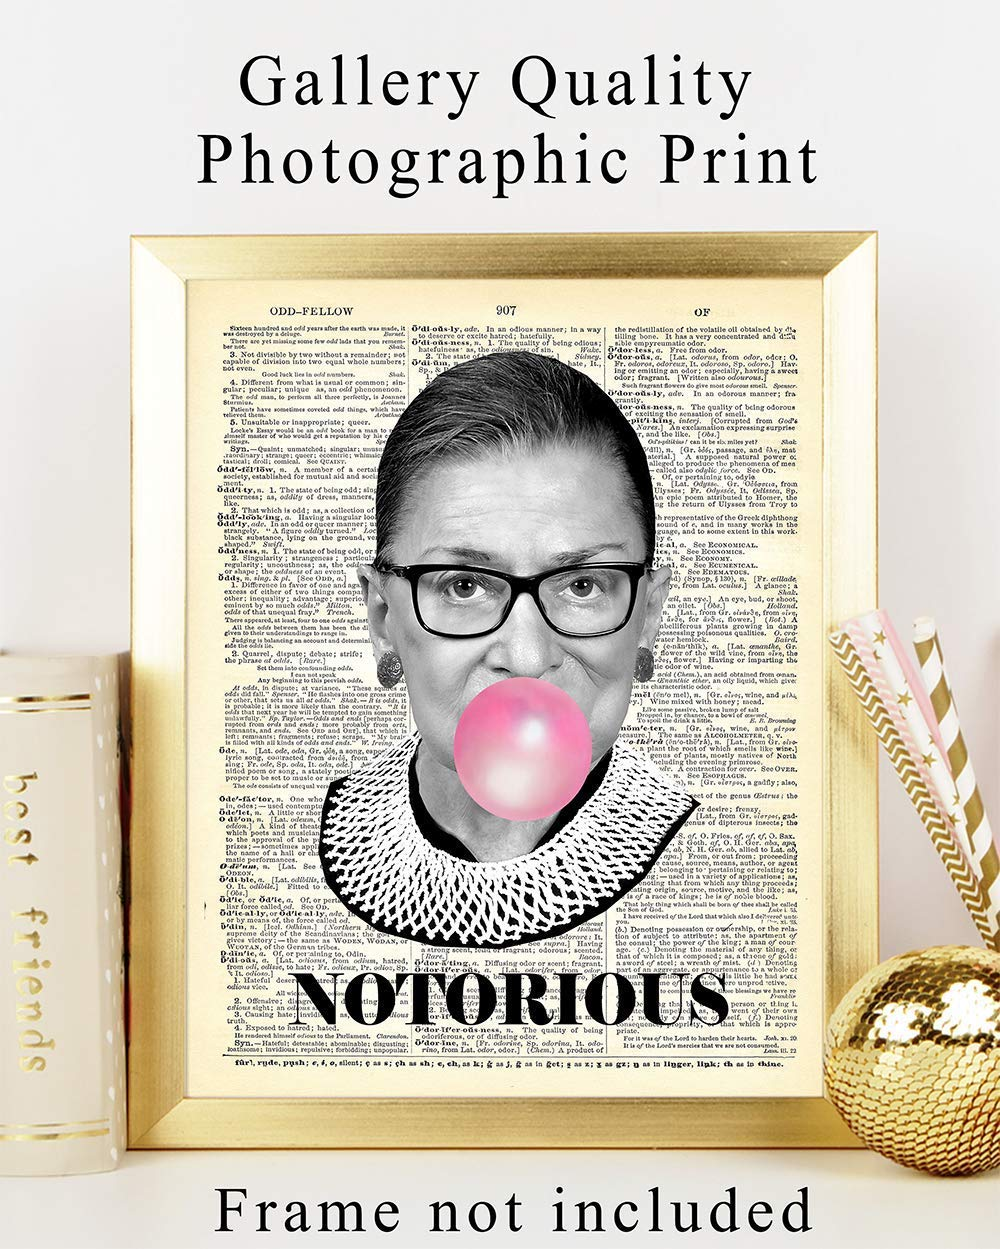 Notorious-RGB-Wall-Art-Print-on-Dictionary-Photo-Ready-to-Frame-8X10-Vintage-Photo-Great-Home-Decor-or-Gift-For-Lawyers-or-Attorneys-Ruth-Bader-Ginsburg